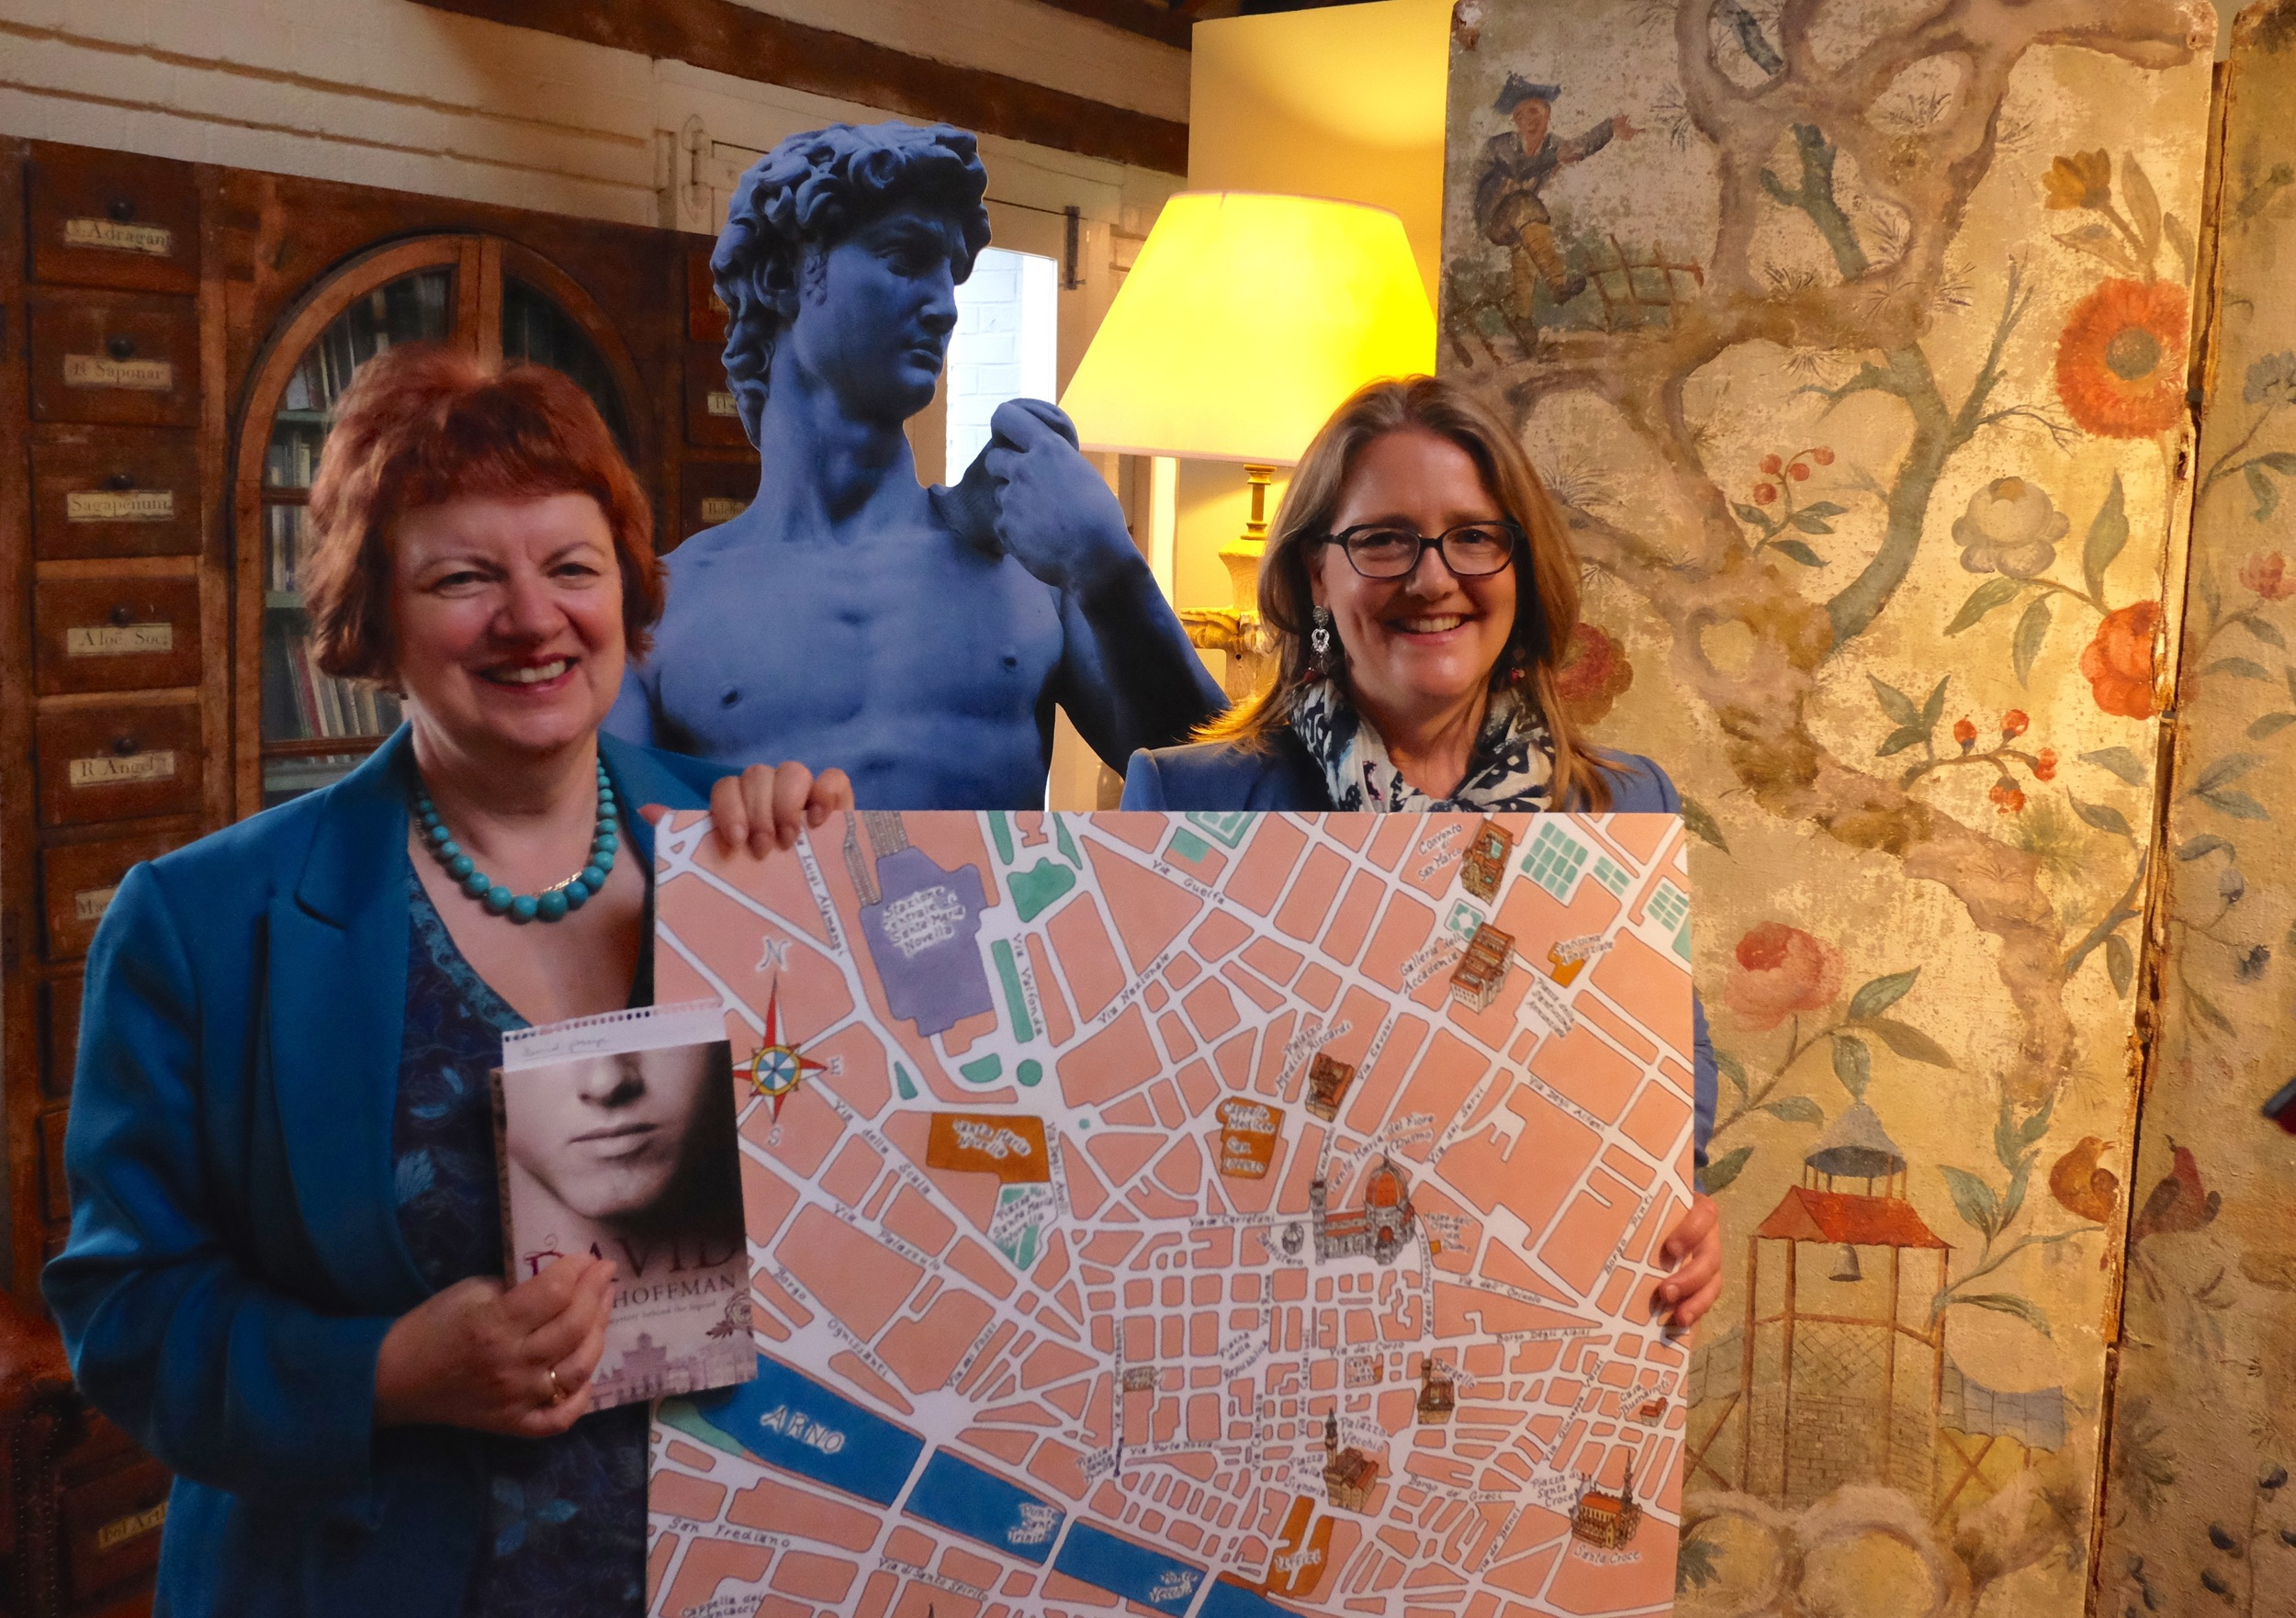 Mary Hoffman and Sarah Towle at the London Launch Party for In the Footsteps of Giants.